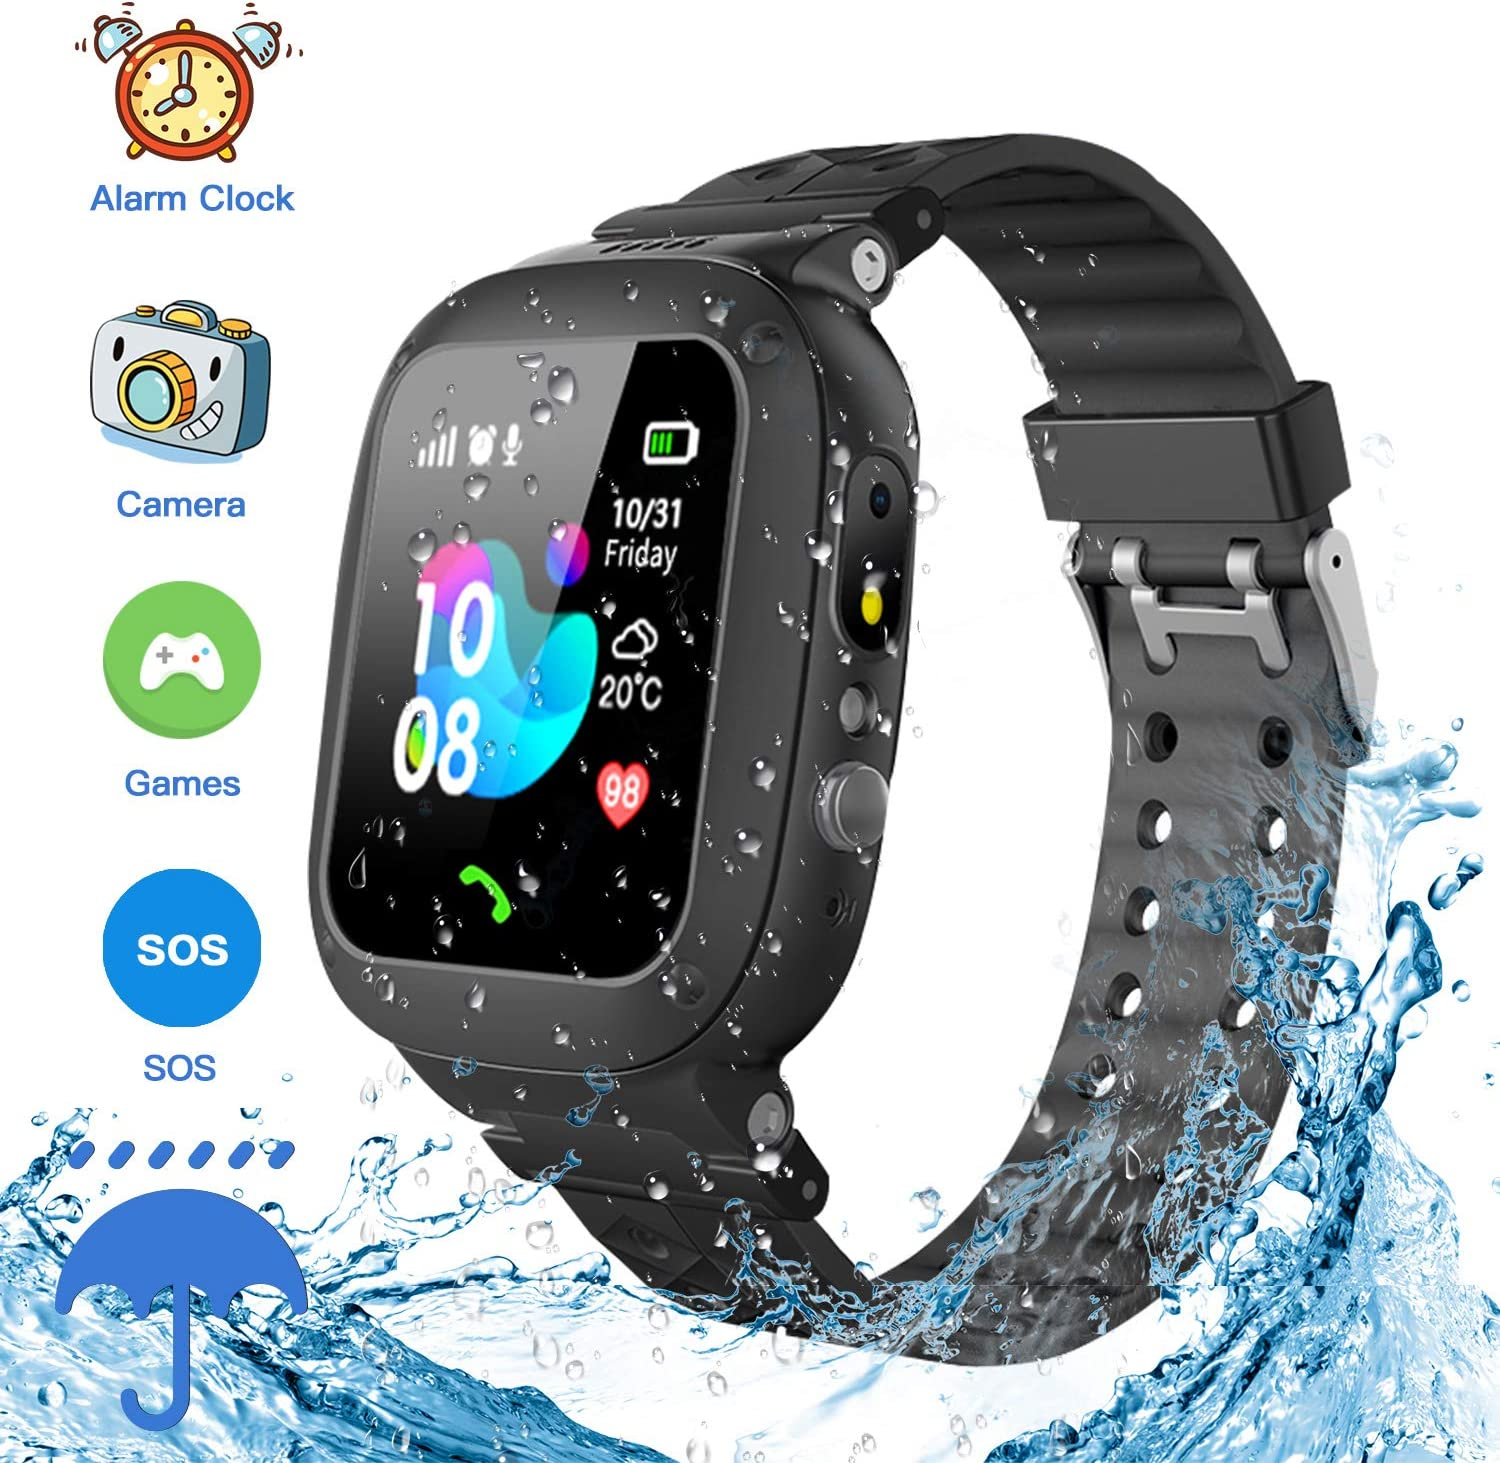 Top 18 Best Smartwatch For Kids (2020 Reviews & Buying Guide) 17